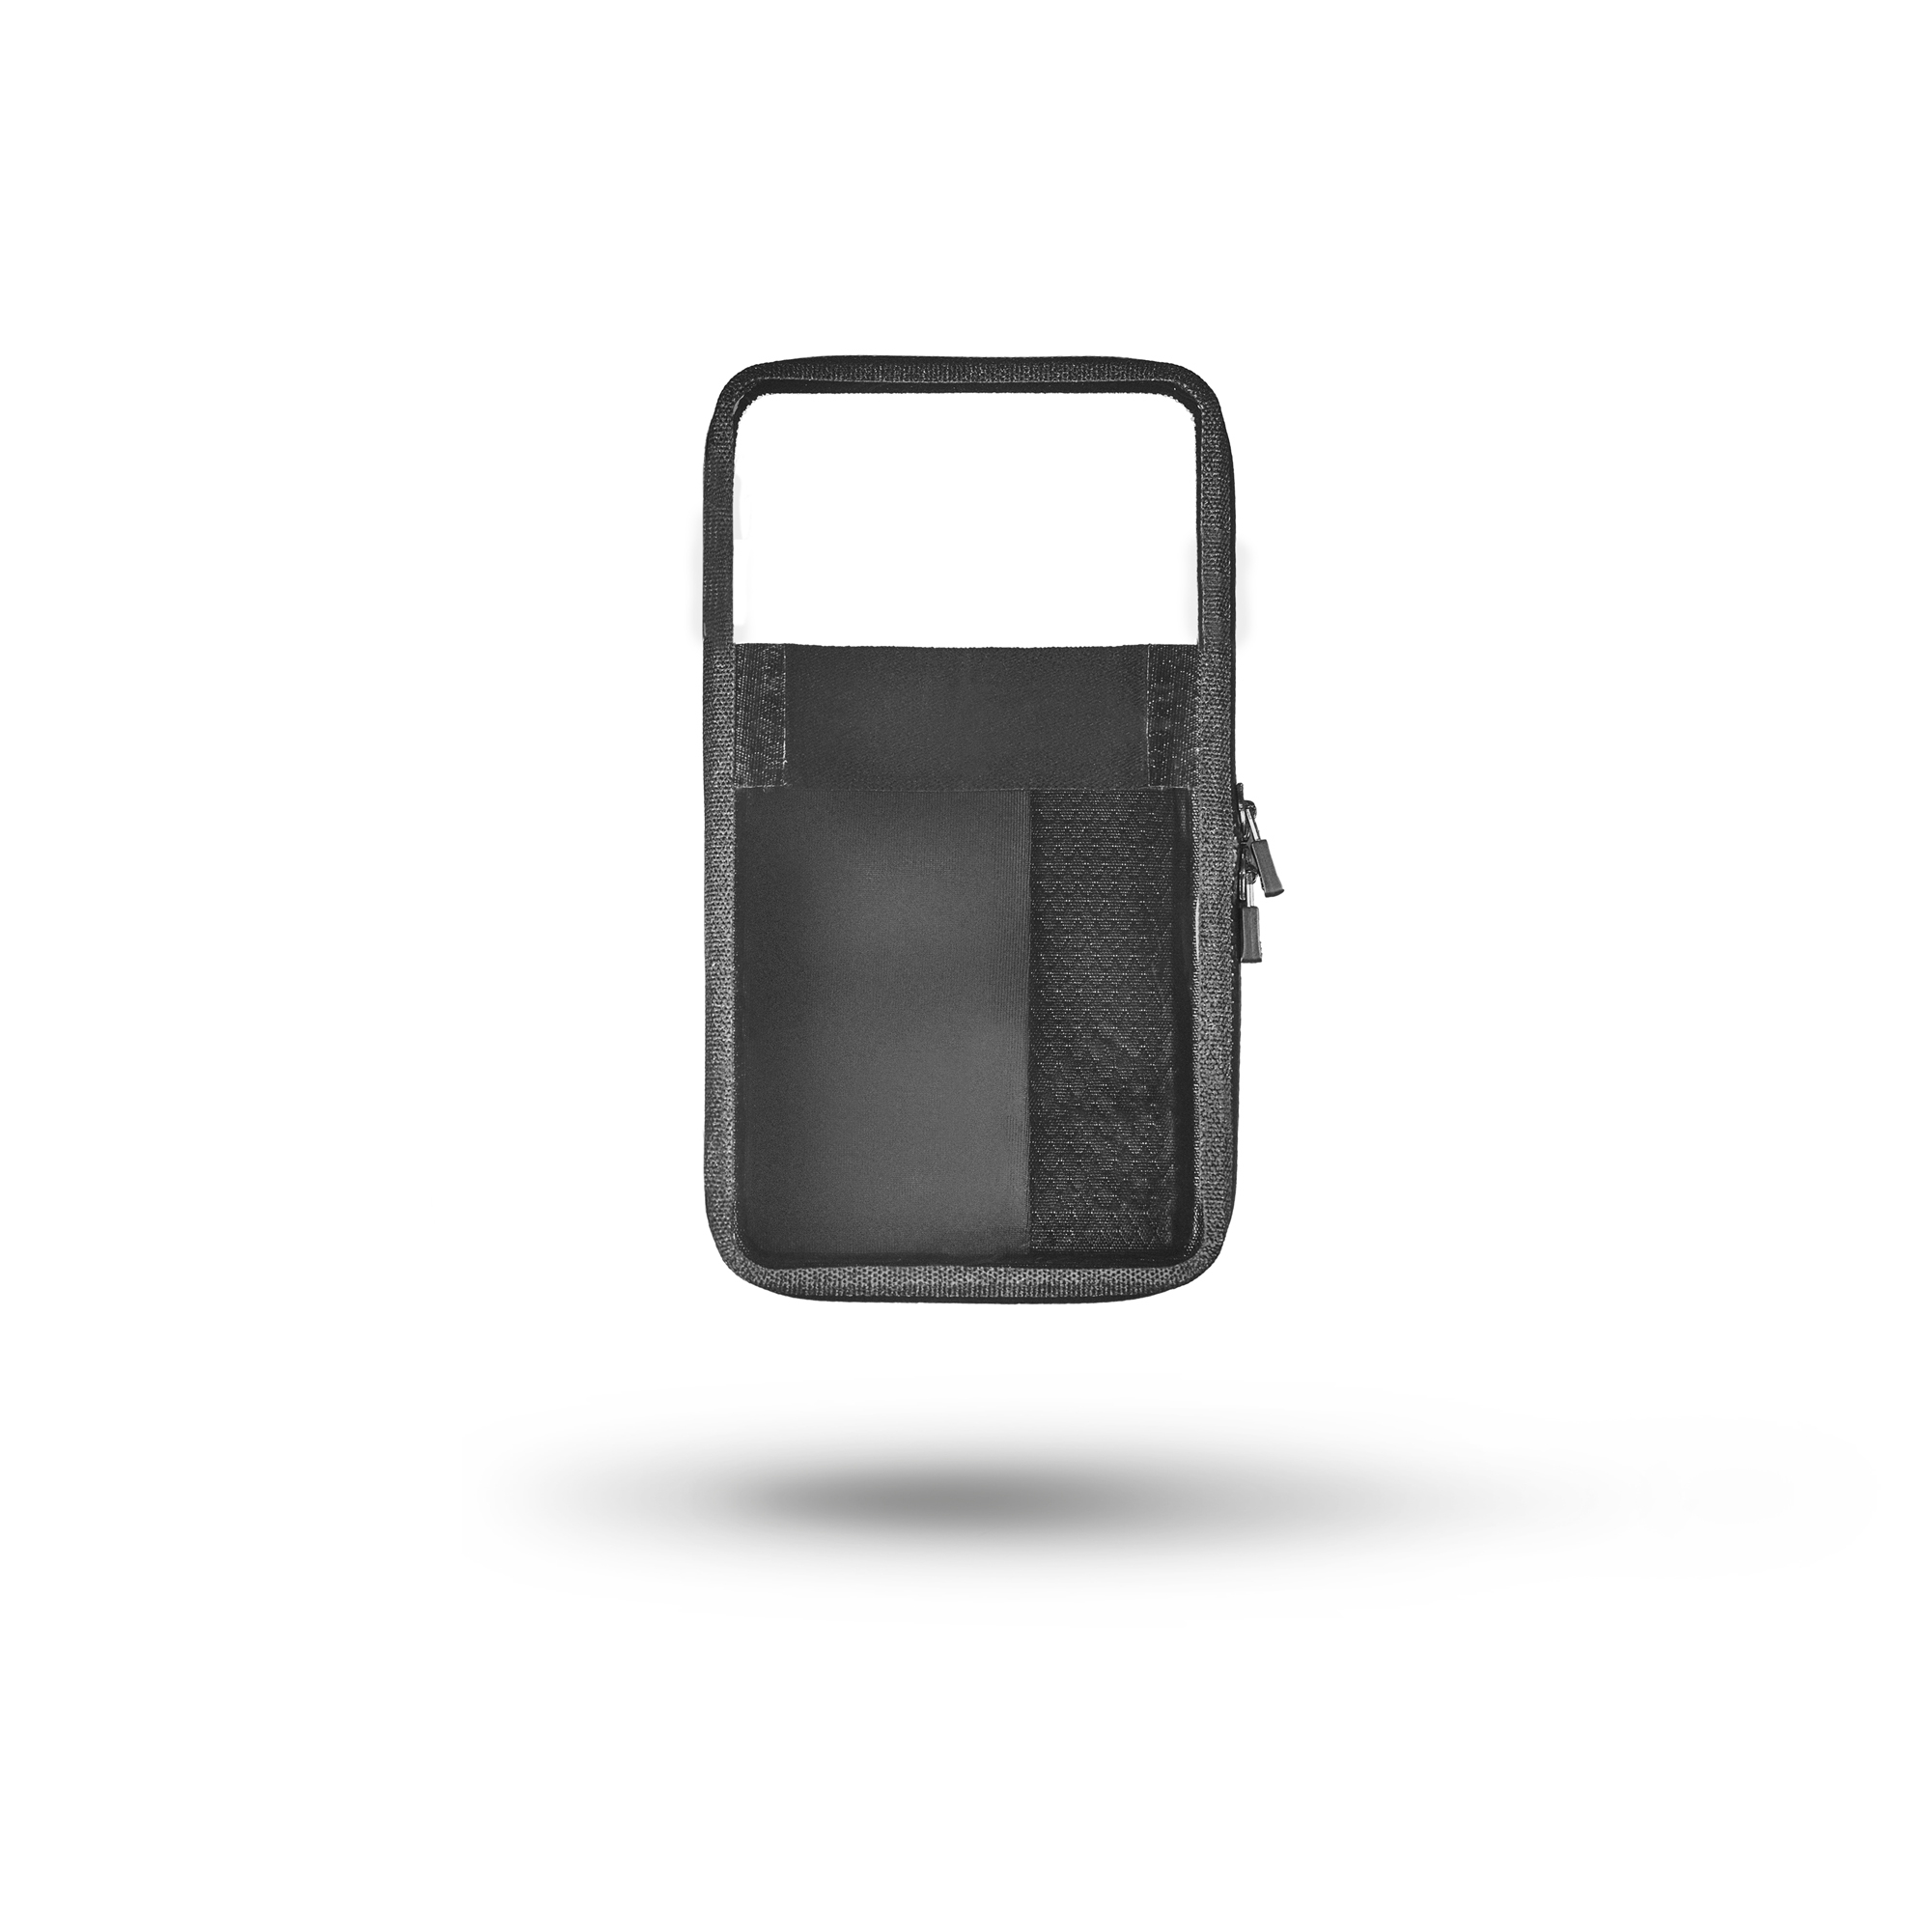 | GripGrab Mobiele telefoon beschermer iPhone 6/7/8 Zwart  / Cycling Wallet for iPhone 6/7/8 Black